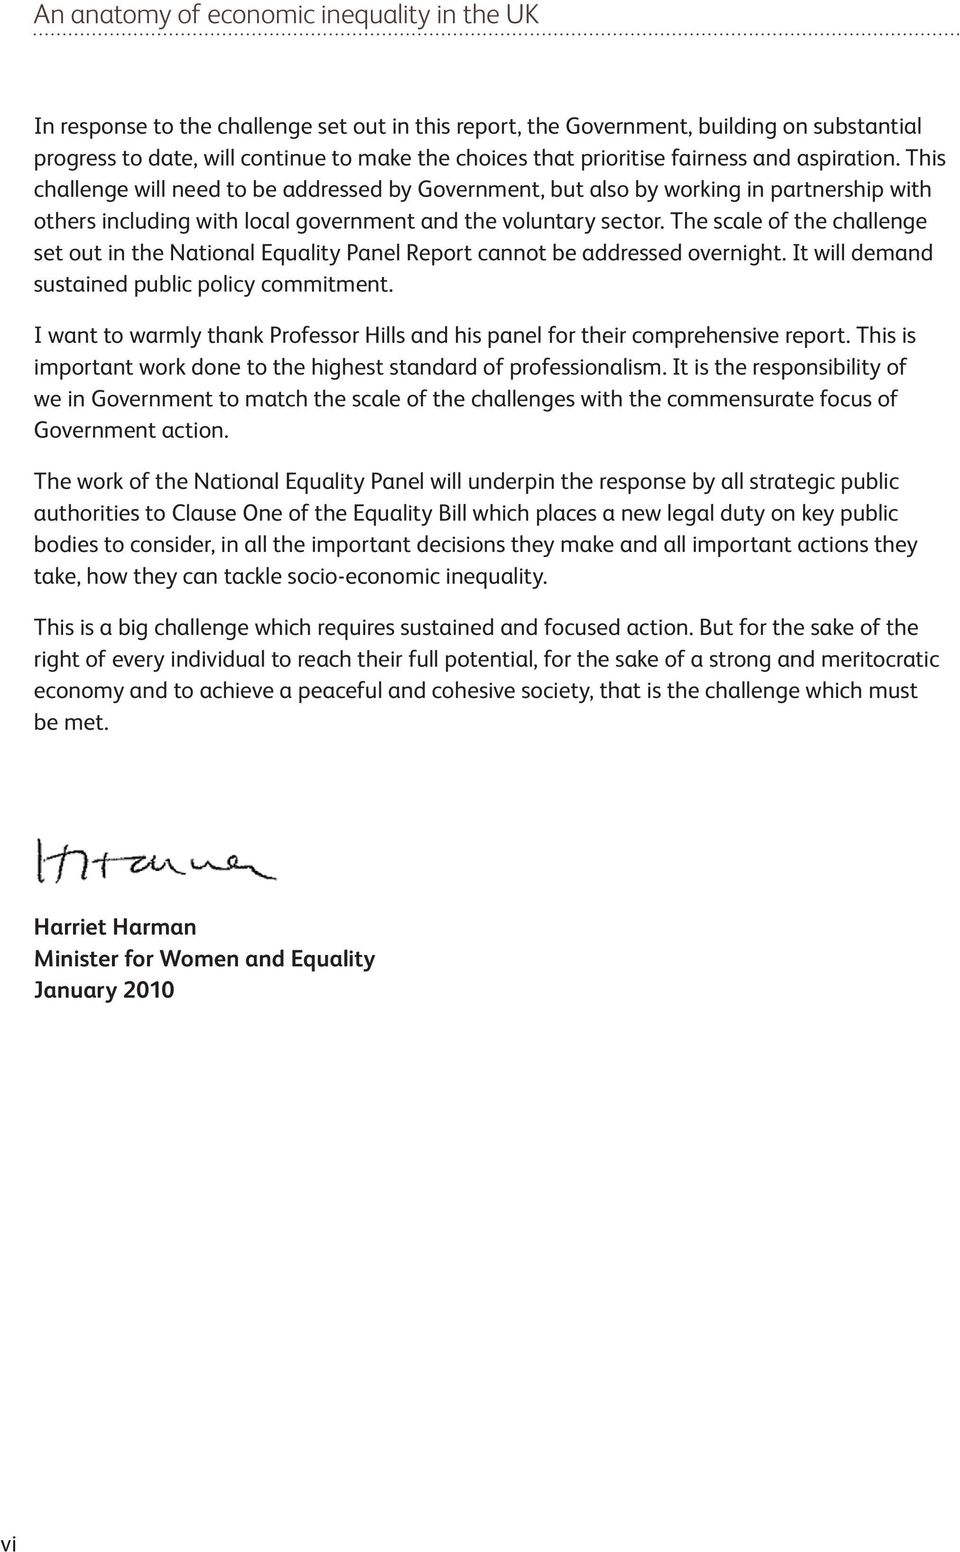 The scale of the challenge set out in the National Equality Panel Report cannot be addressed overnight. It will demand sustained public policy commitment.